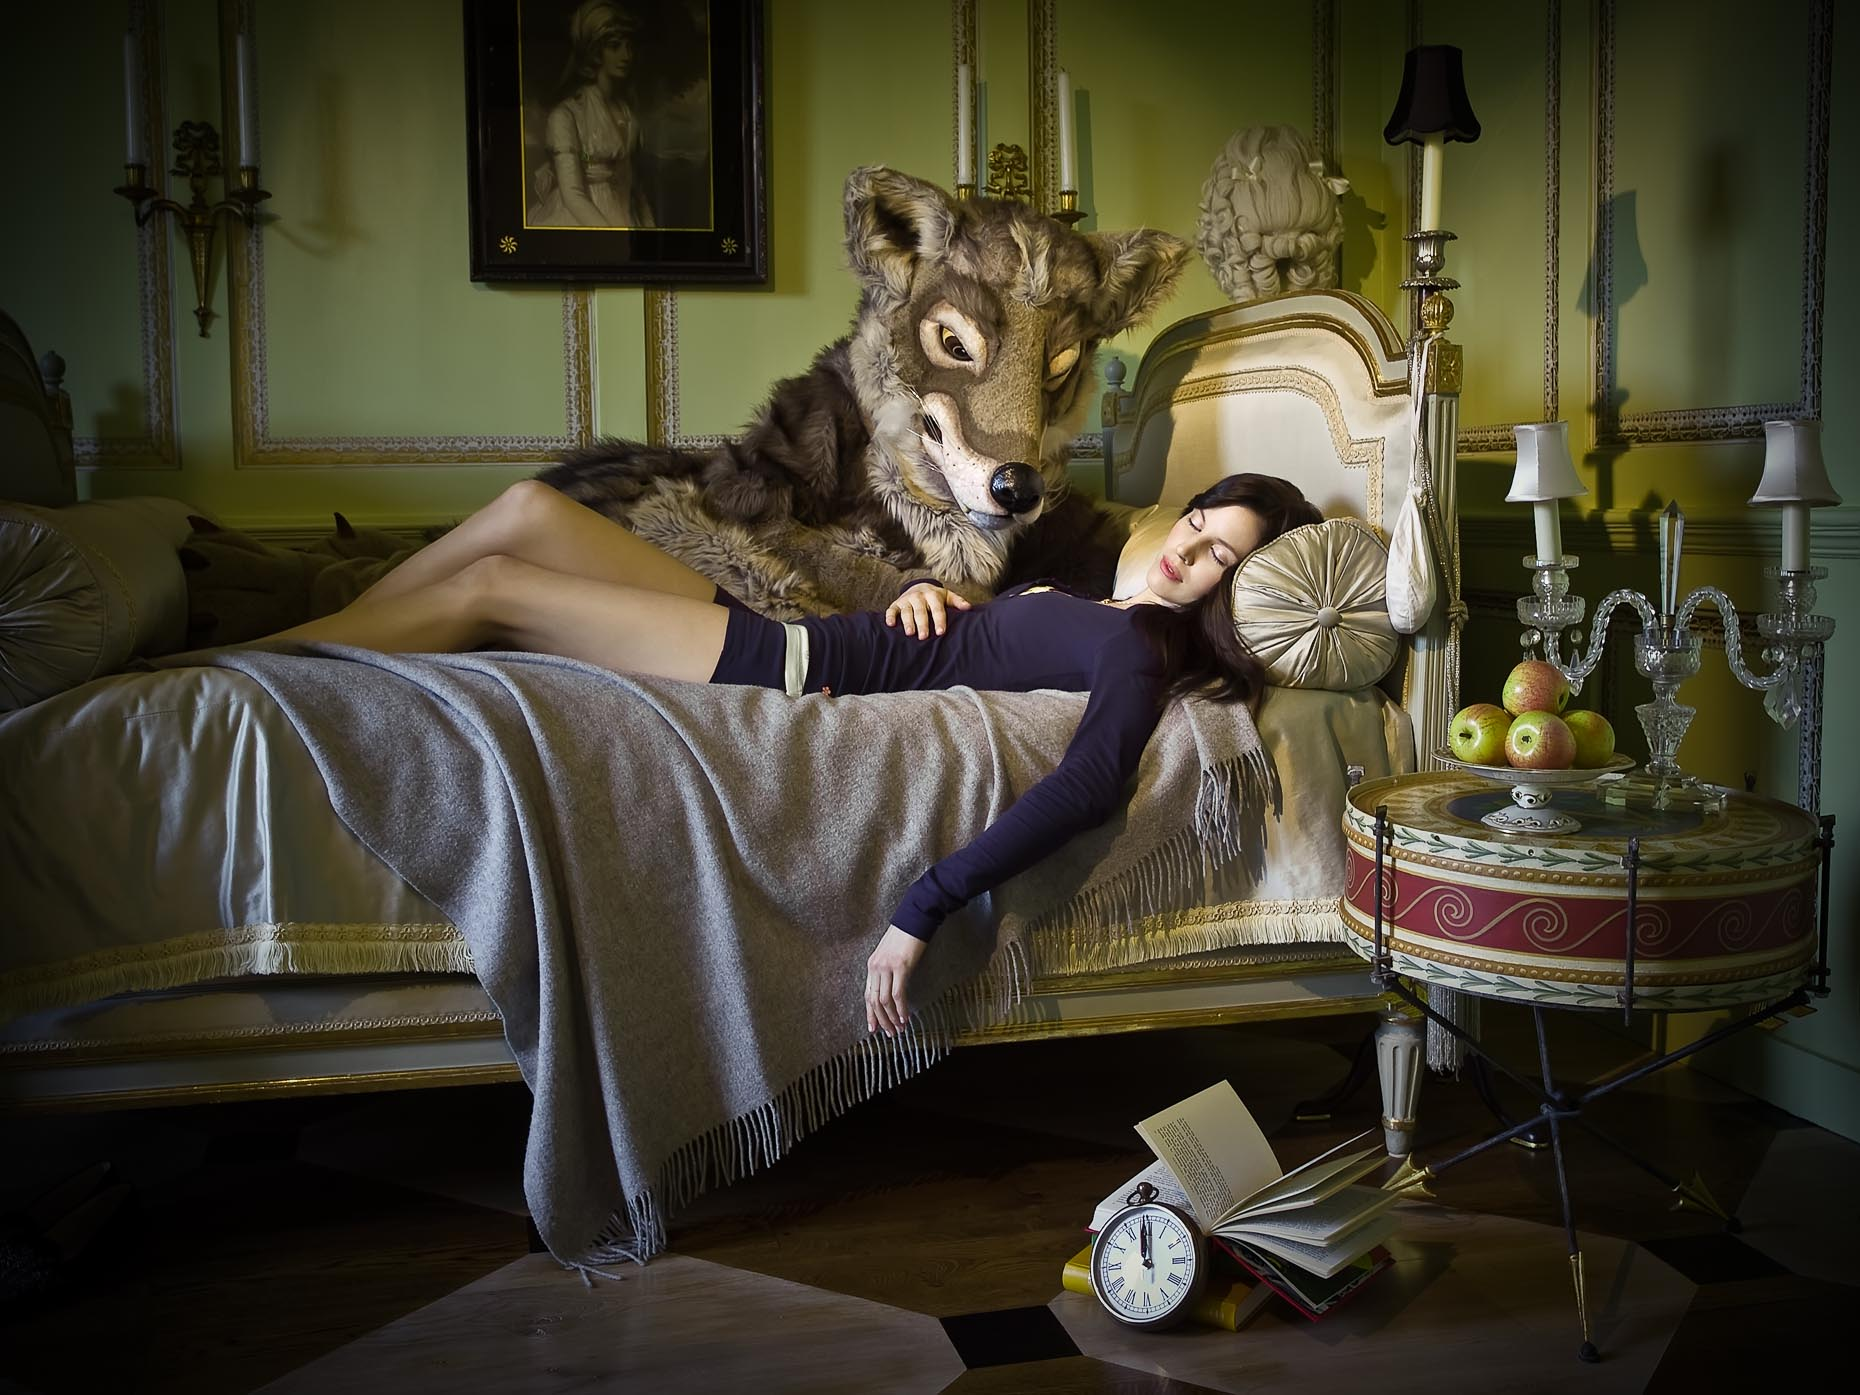 marc-rogoff-fantasy-wolf-and-model